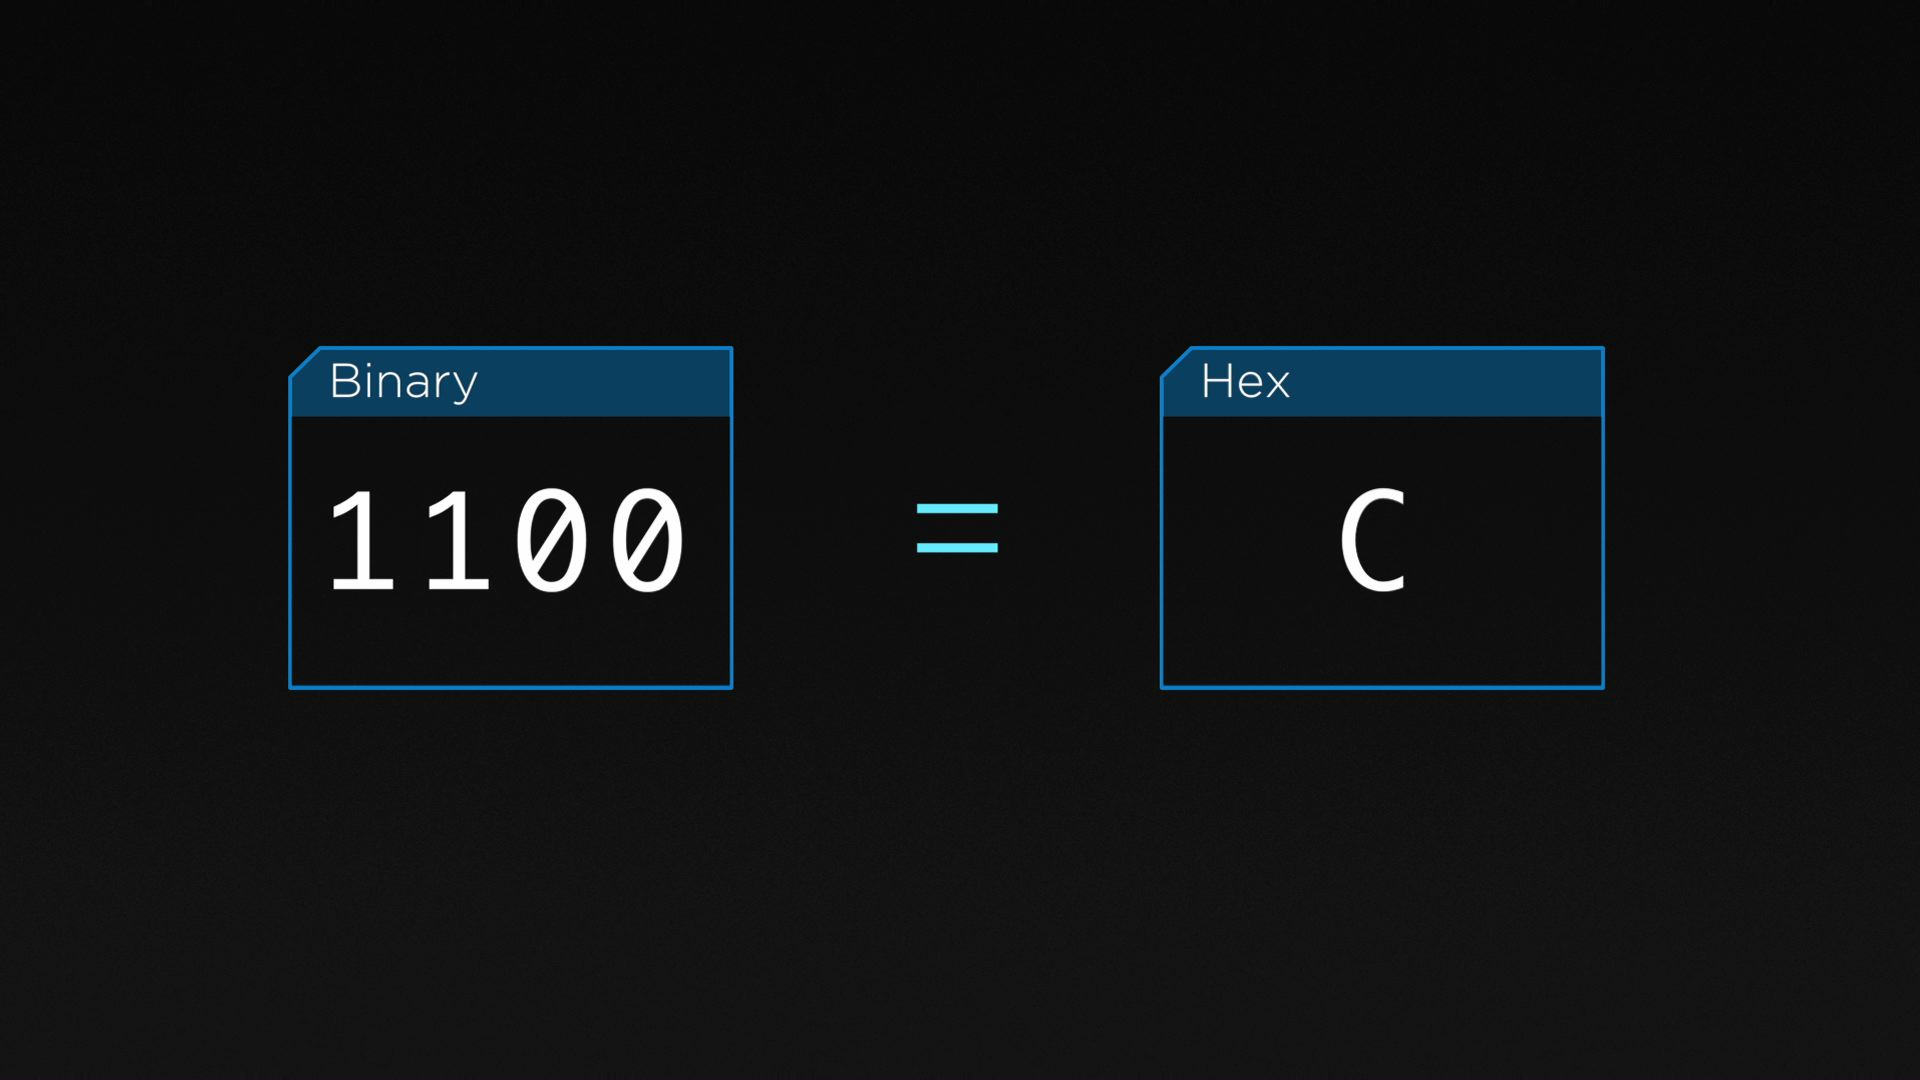 collin_s_lab_Collins_Lab-Binary_and_Hex-v2.jpeg